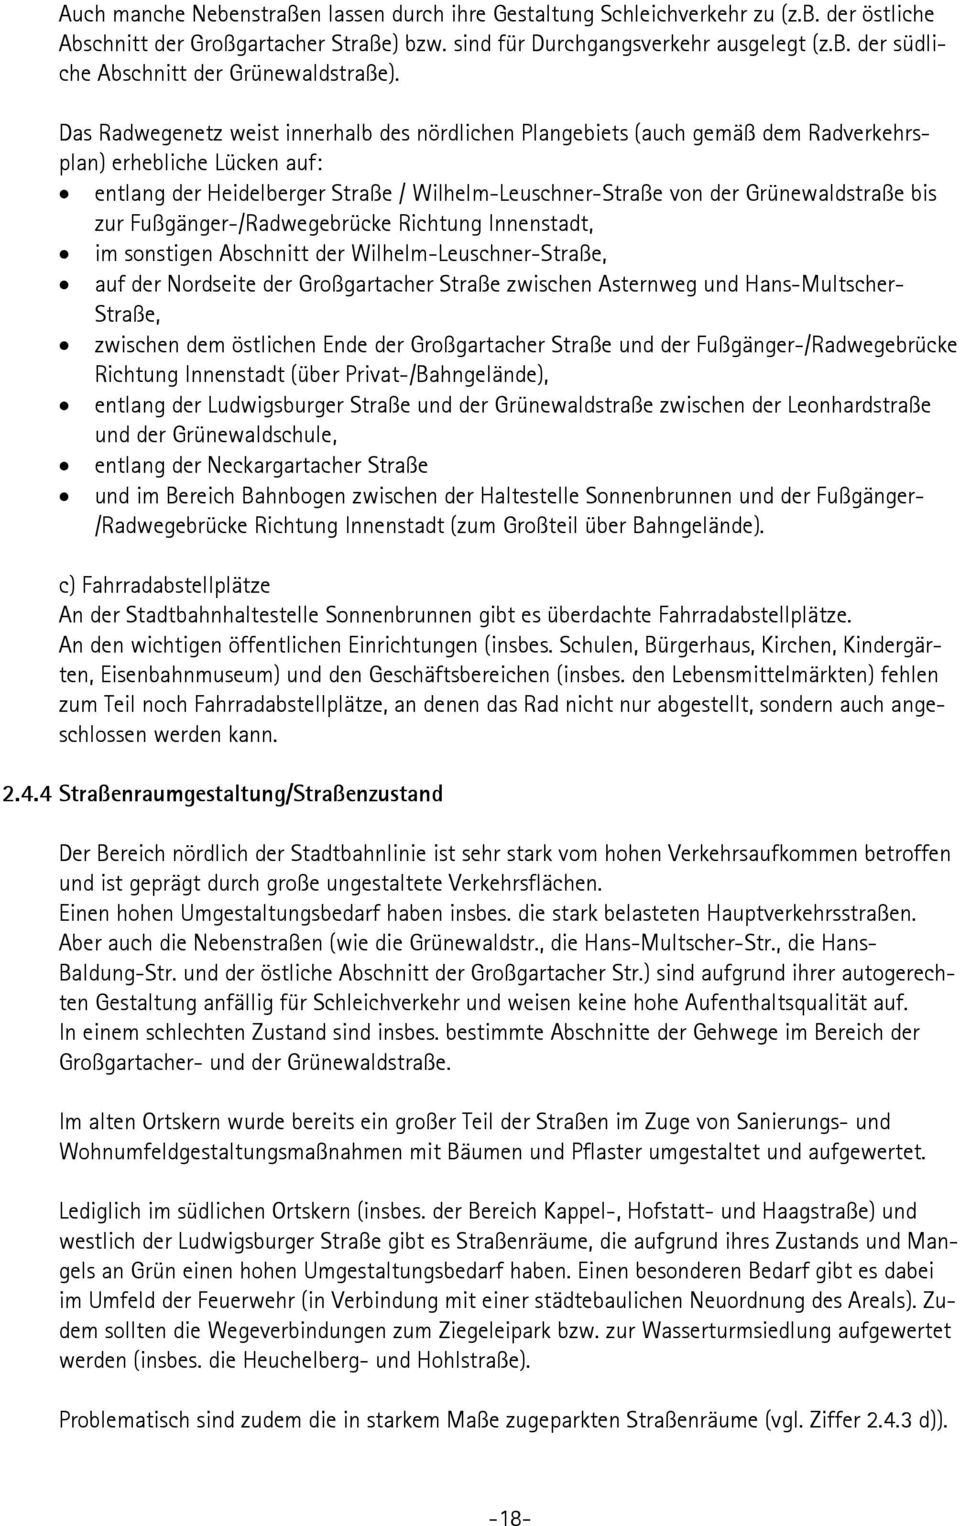 Charmant Kostenlose Zugangsvorlagen Galerie - Entry Level Resume ...